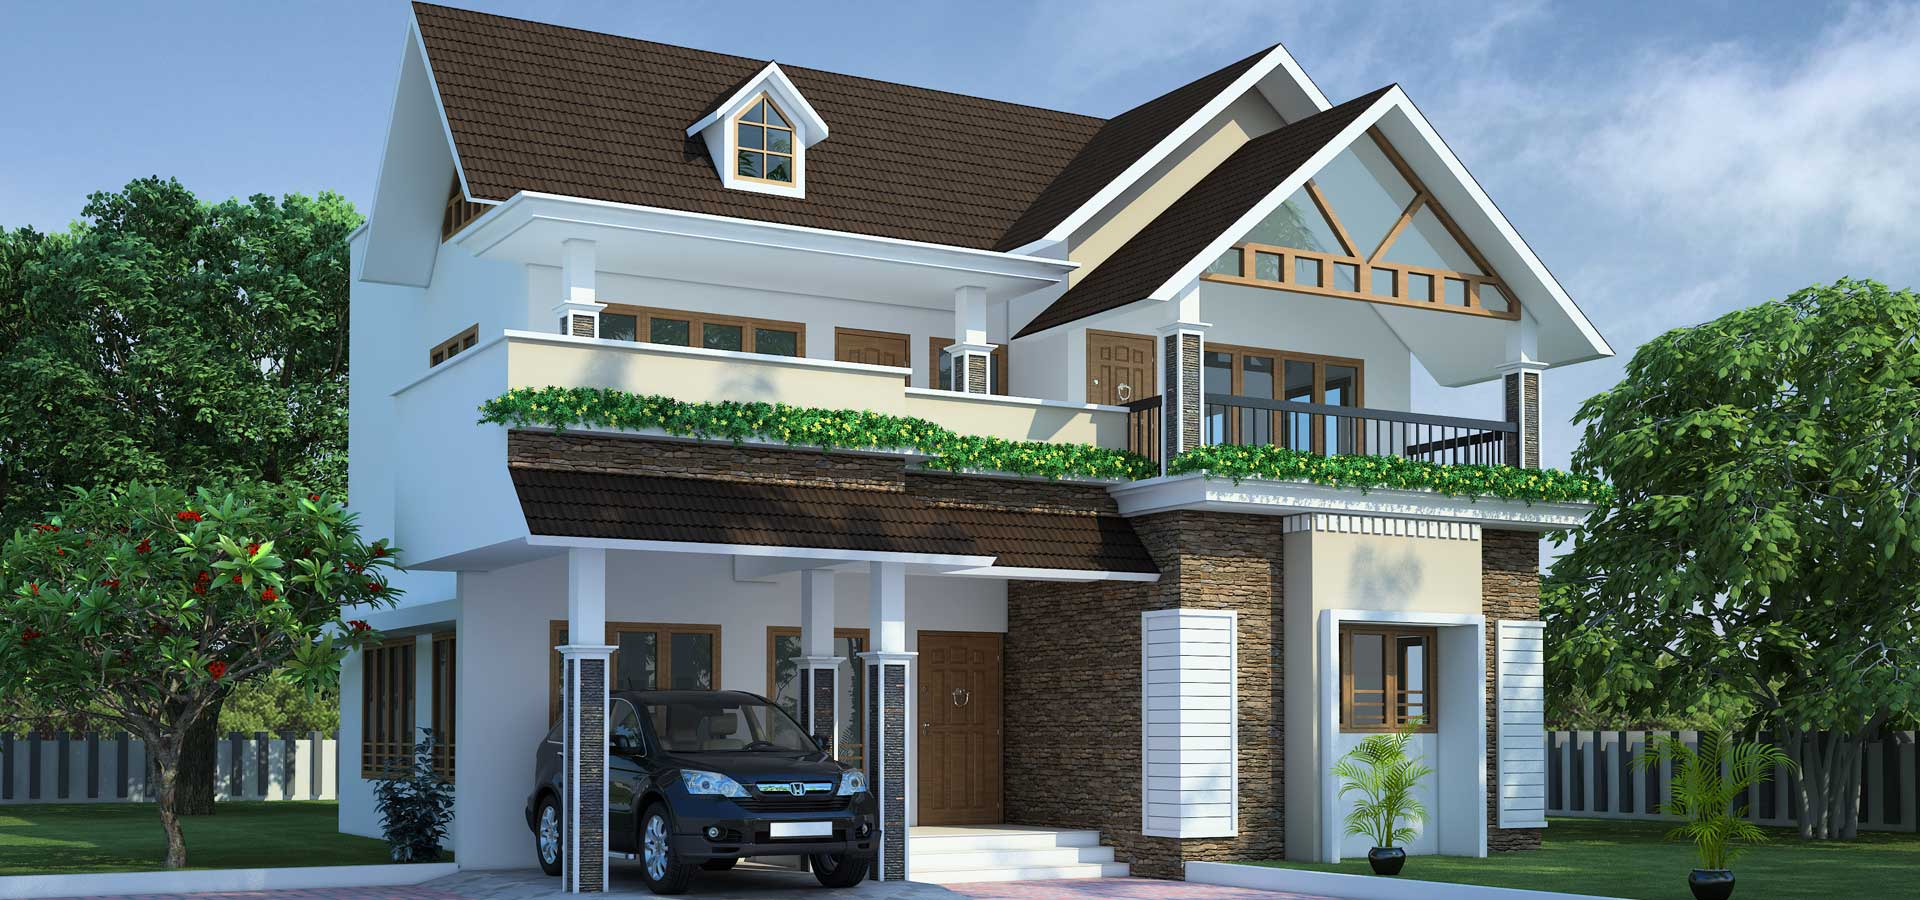 Architects In Thrissur Interior Designing In Thrissur Interior Designers In Thrissur Architectural Company In Thrissur Interior Designing Company In Thrissur Chalakudy Irinjalakuda Chavakkad Guruvayoor Kodungallur Thriprayar Kunnamkulam